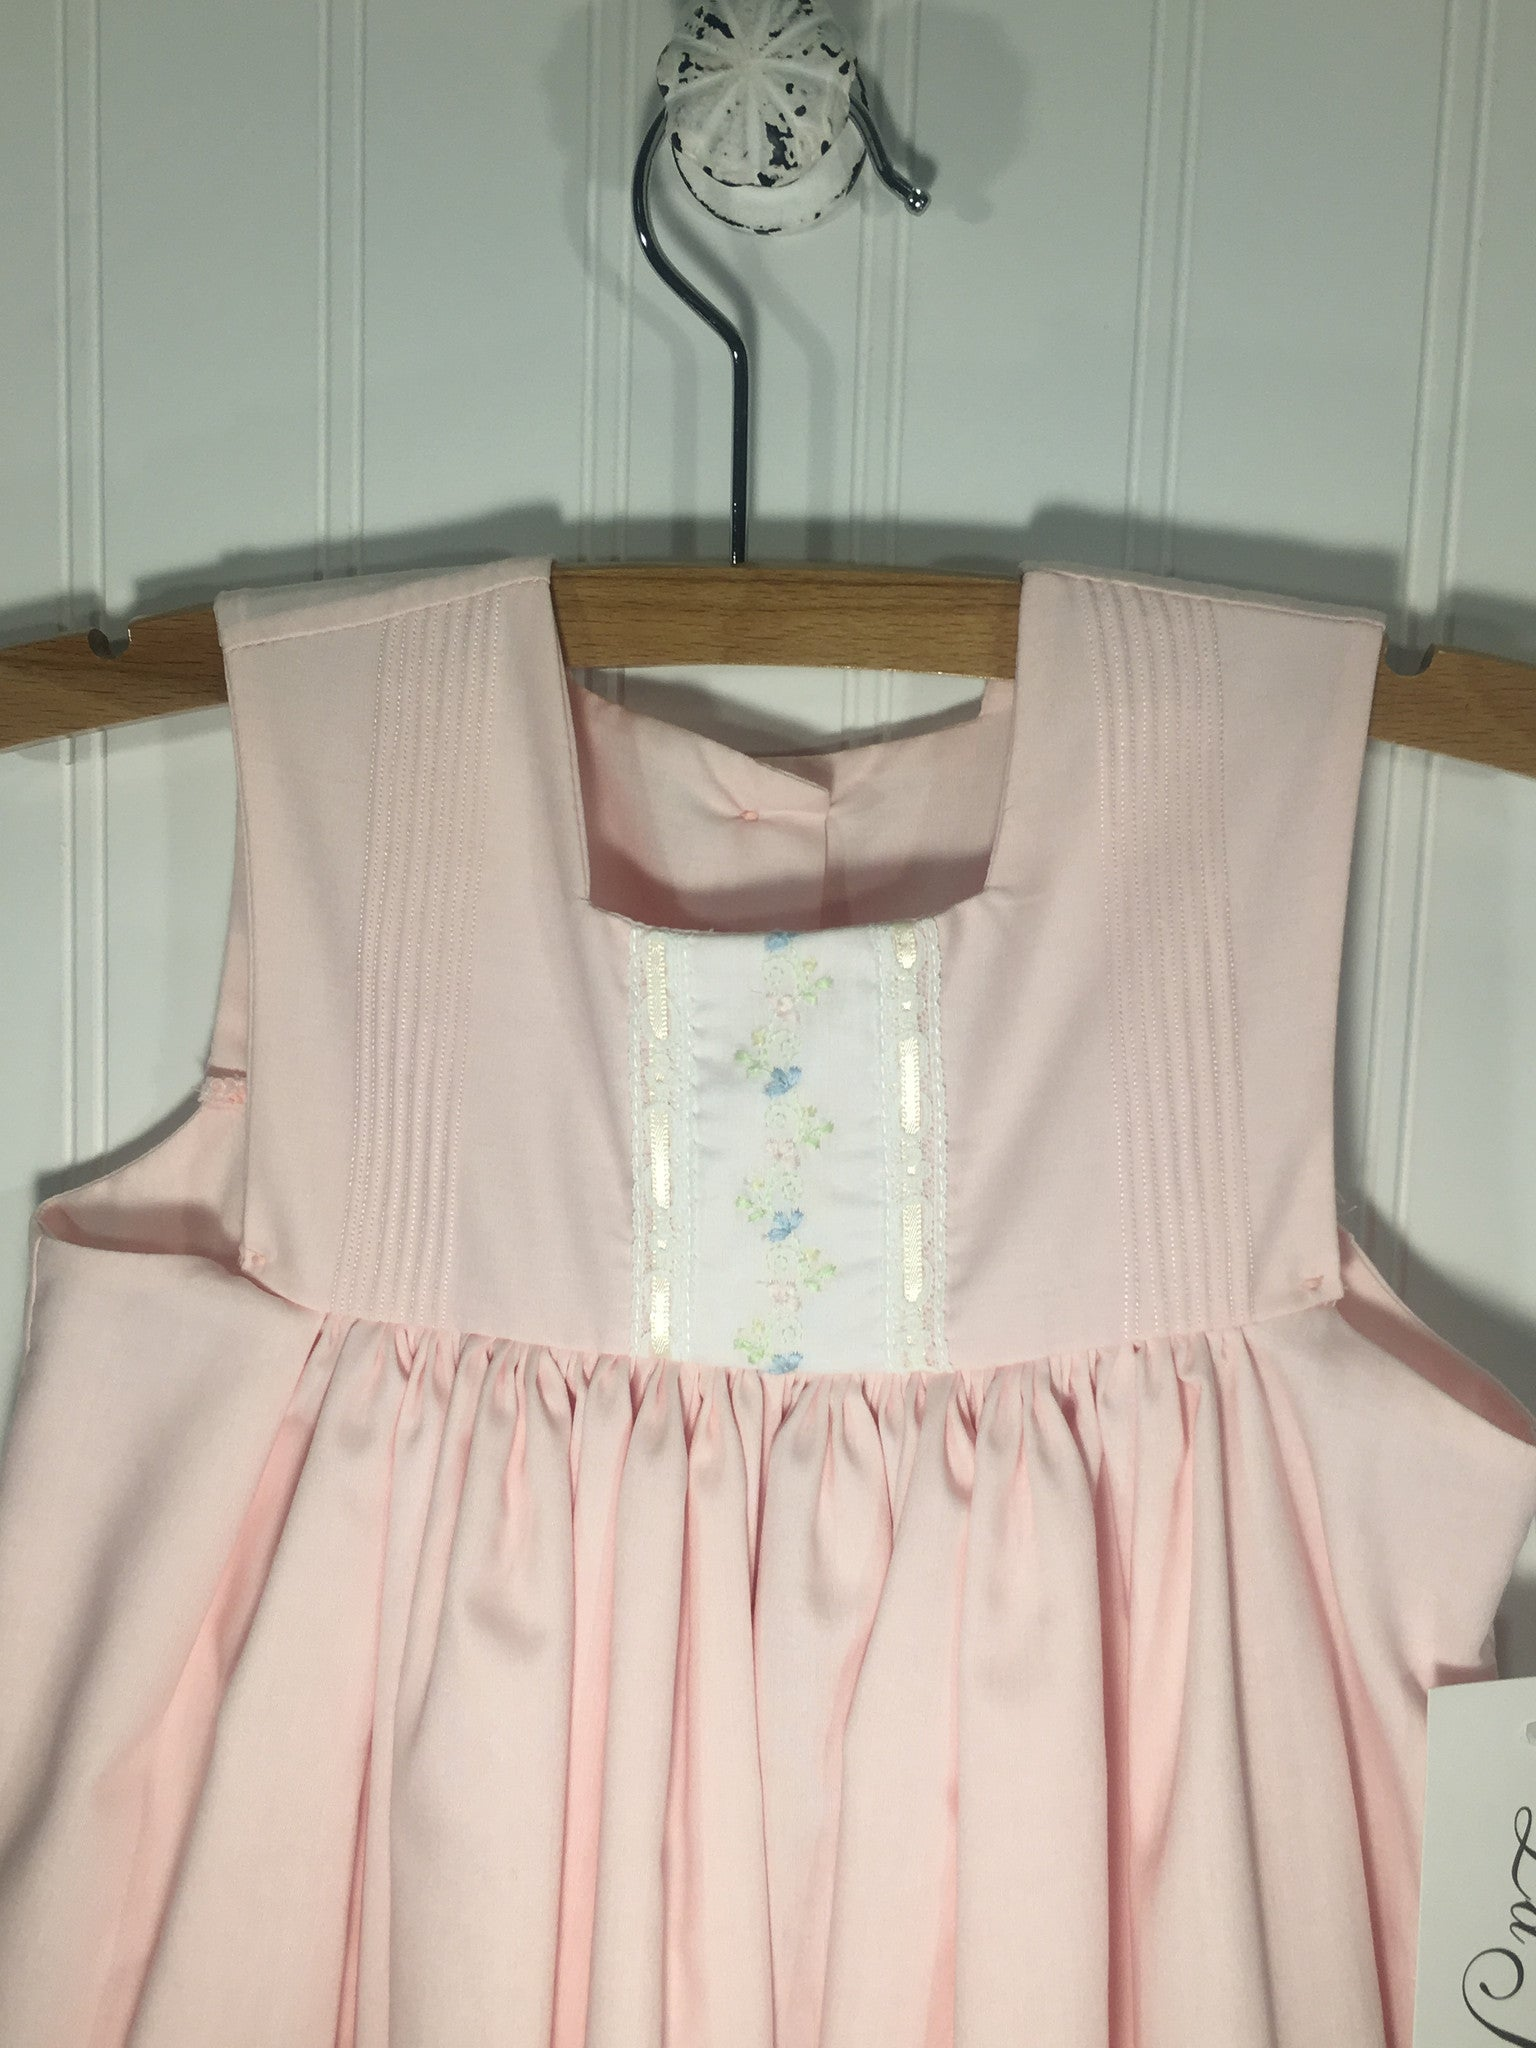 Heirloom Sleeveless Pink Dress - Born Childrens Boutique  - 2